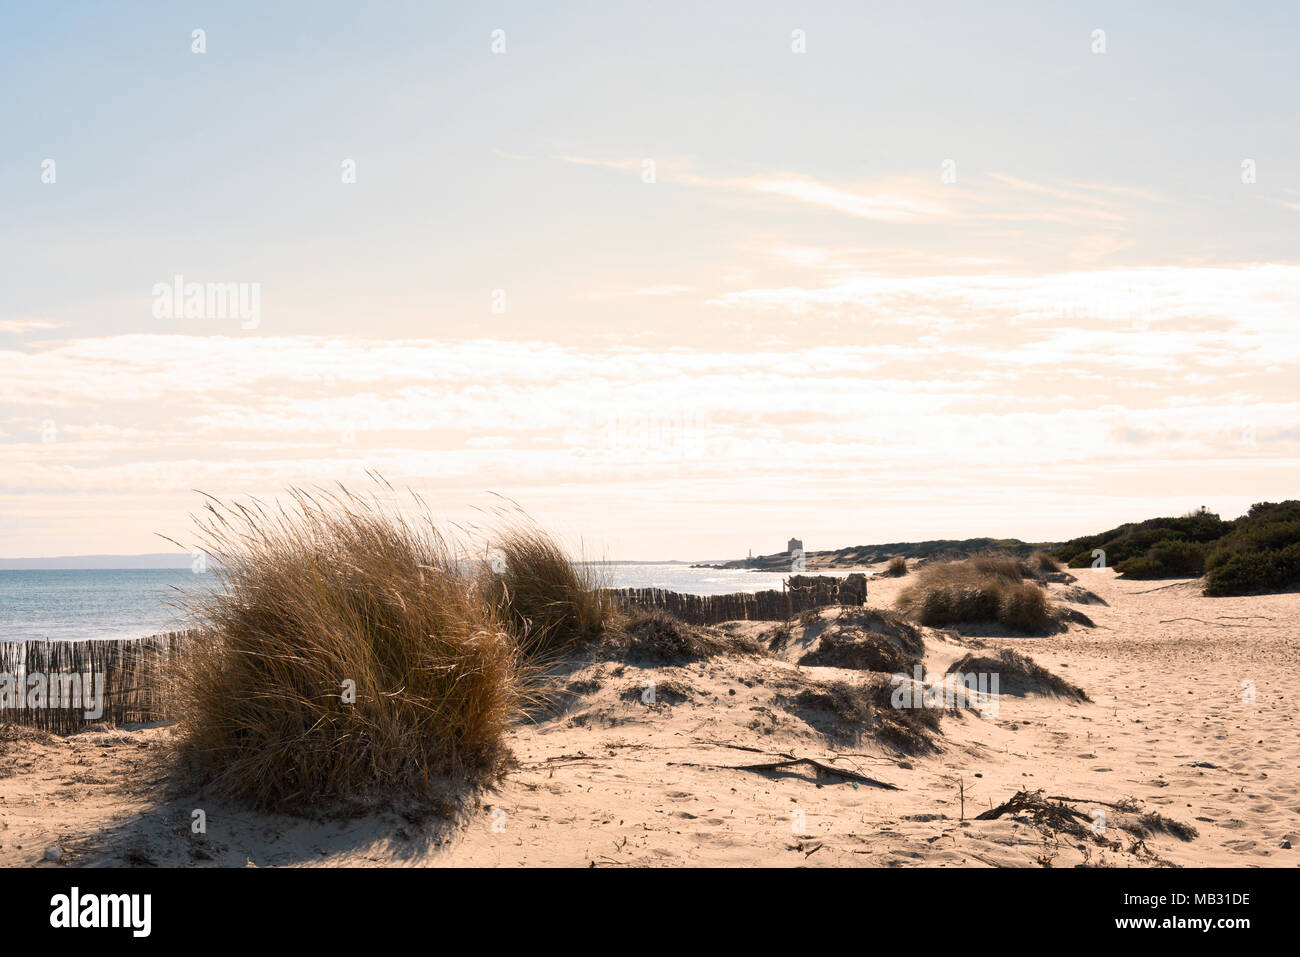 Beach scene with beach dunes and copy space. Es Cavallet, Ibiza Island. Sunset scene. - Stock Image